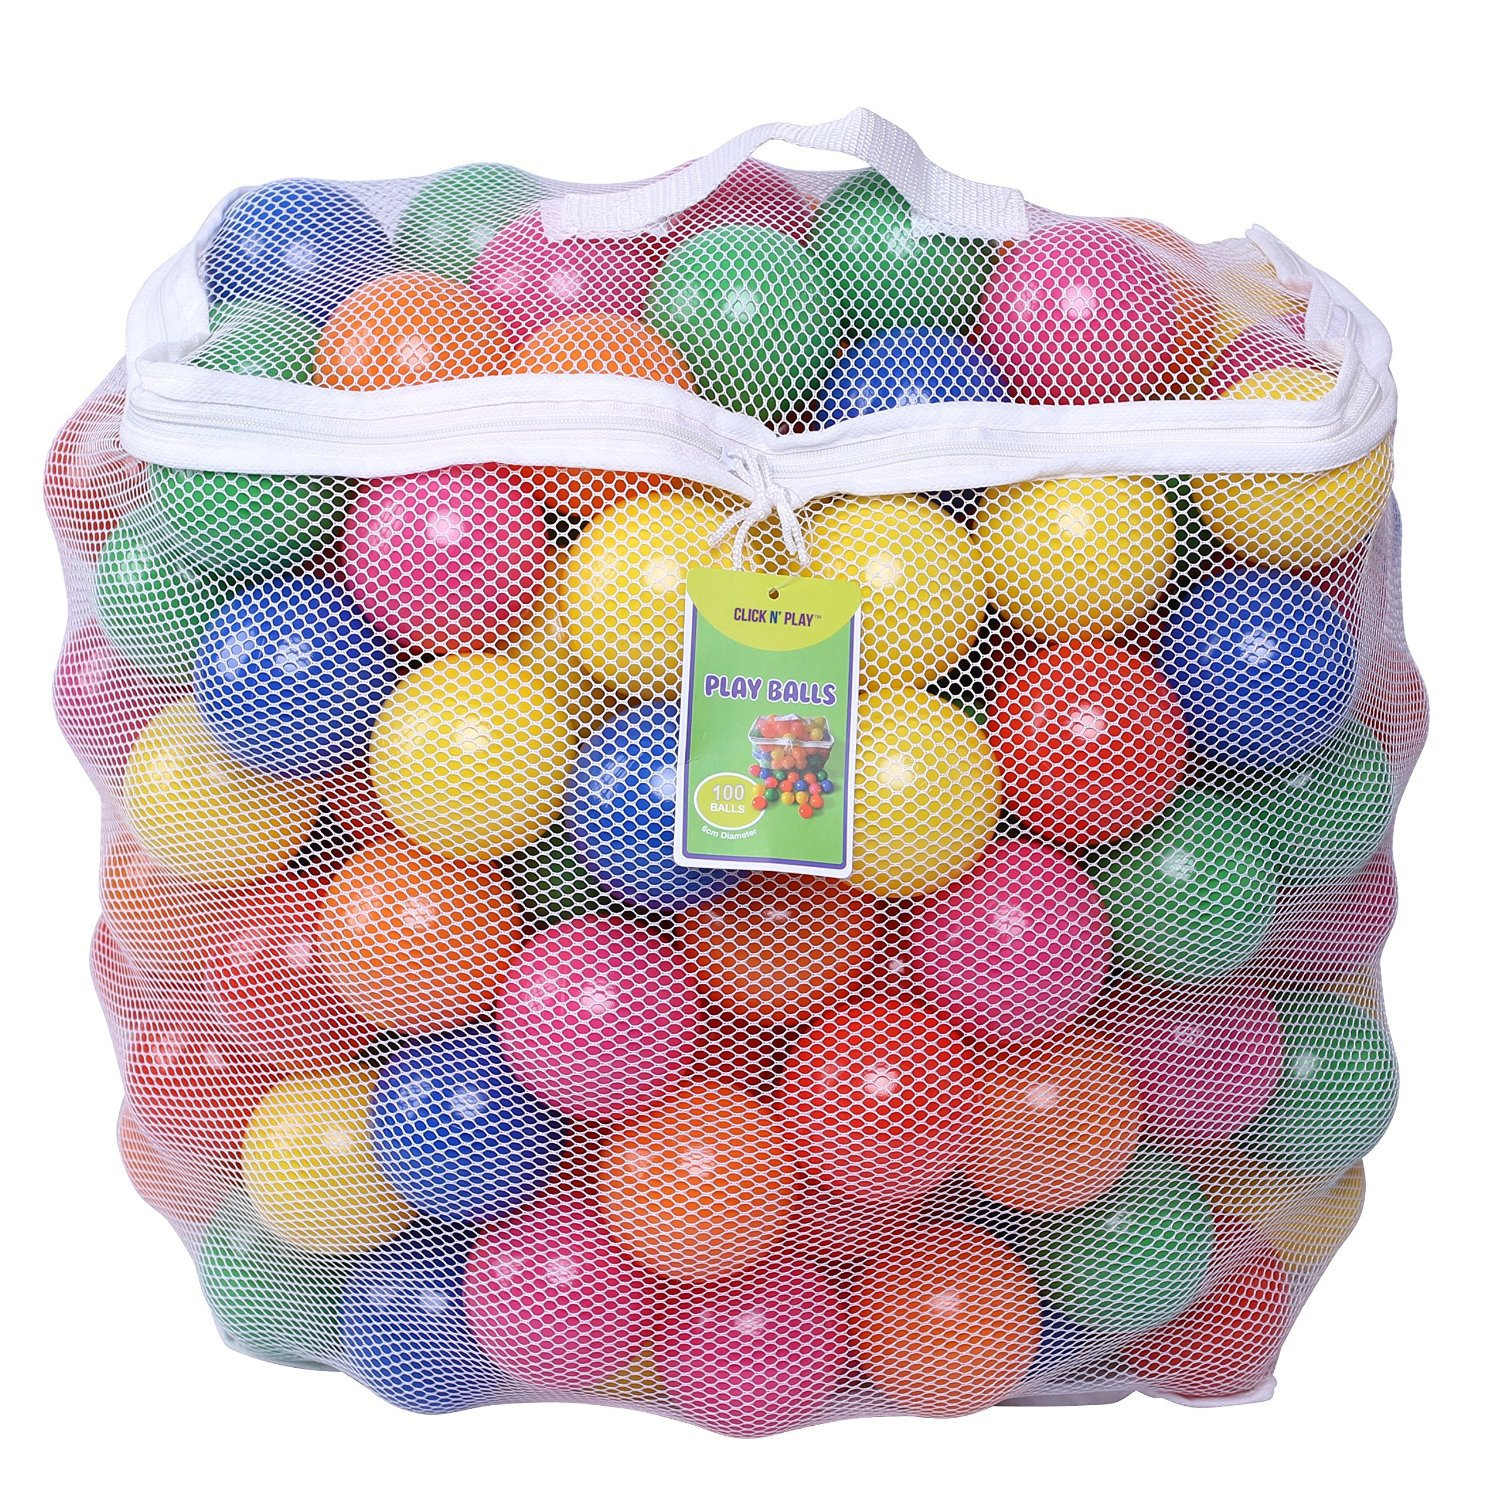 Click N' Play 0005A Pack of 100 Phthalate Free BPA Free Crush Proof Plastic Ball, Pit Balls-6 Bright Colors in Reusable and Durable Storage Mesh Bag with Zipper Click N' Play CNP0005A